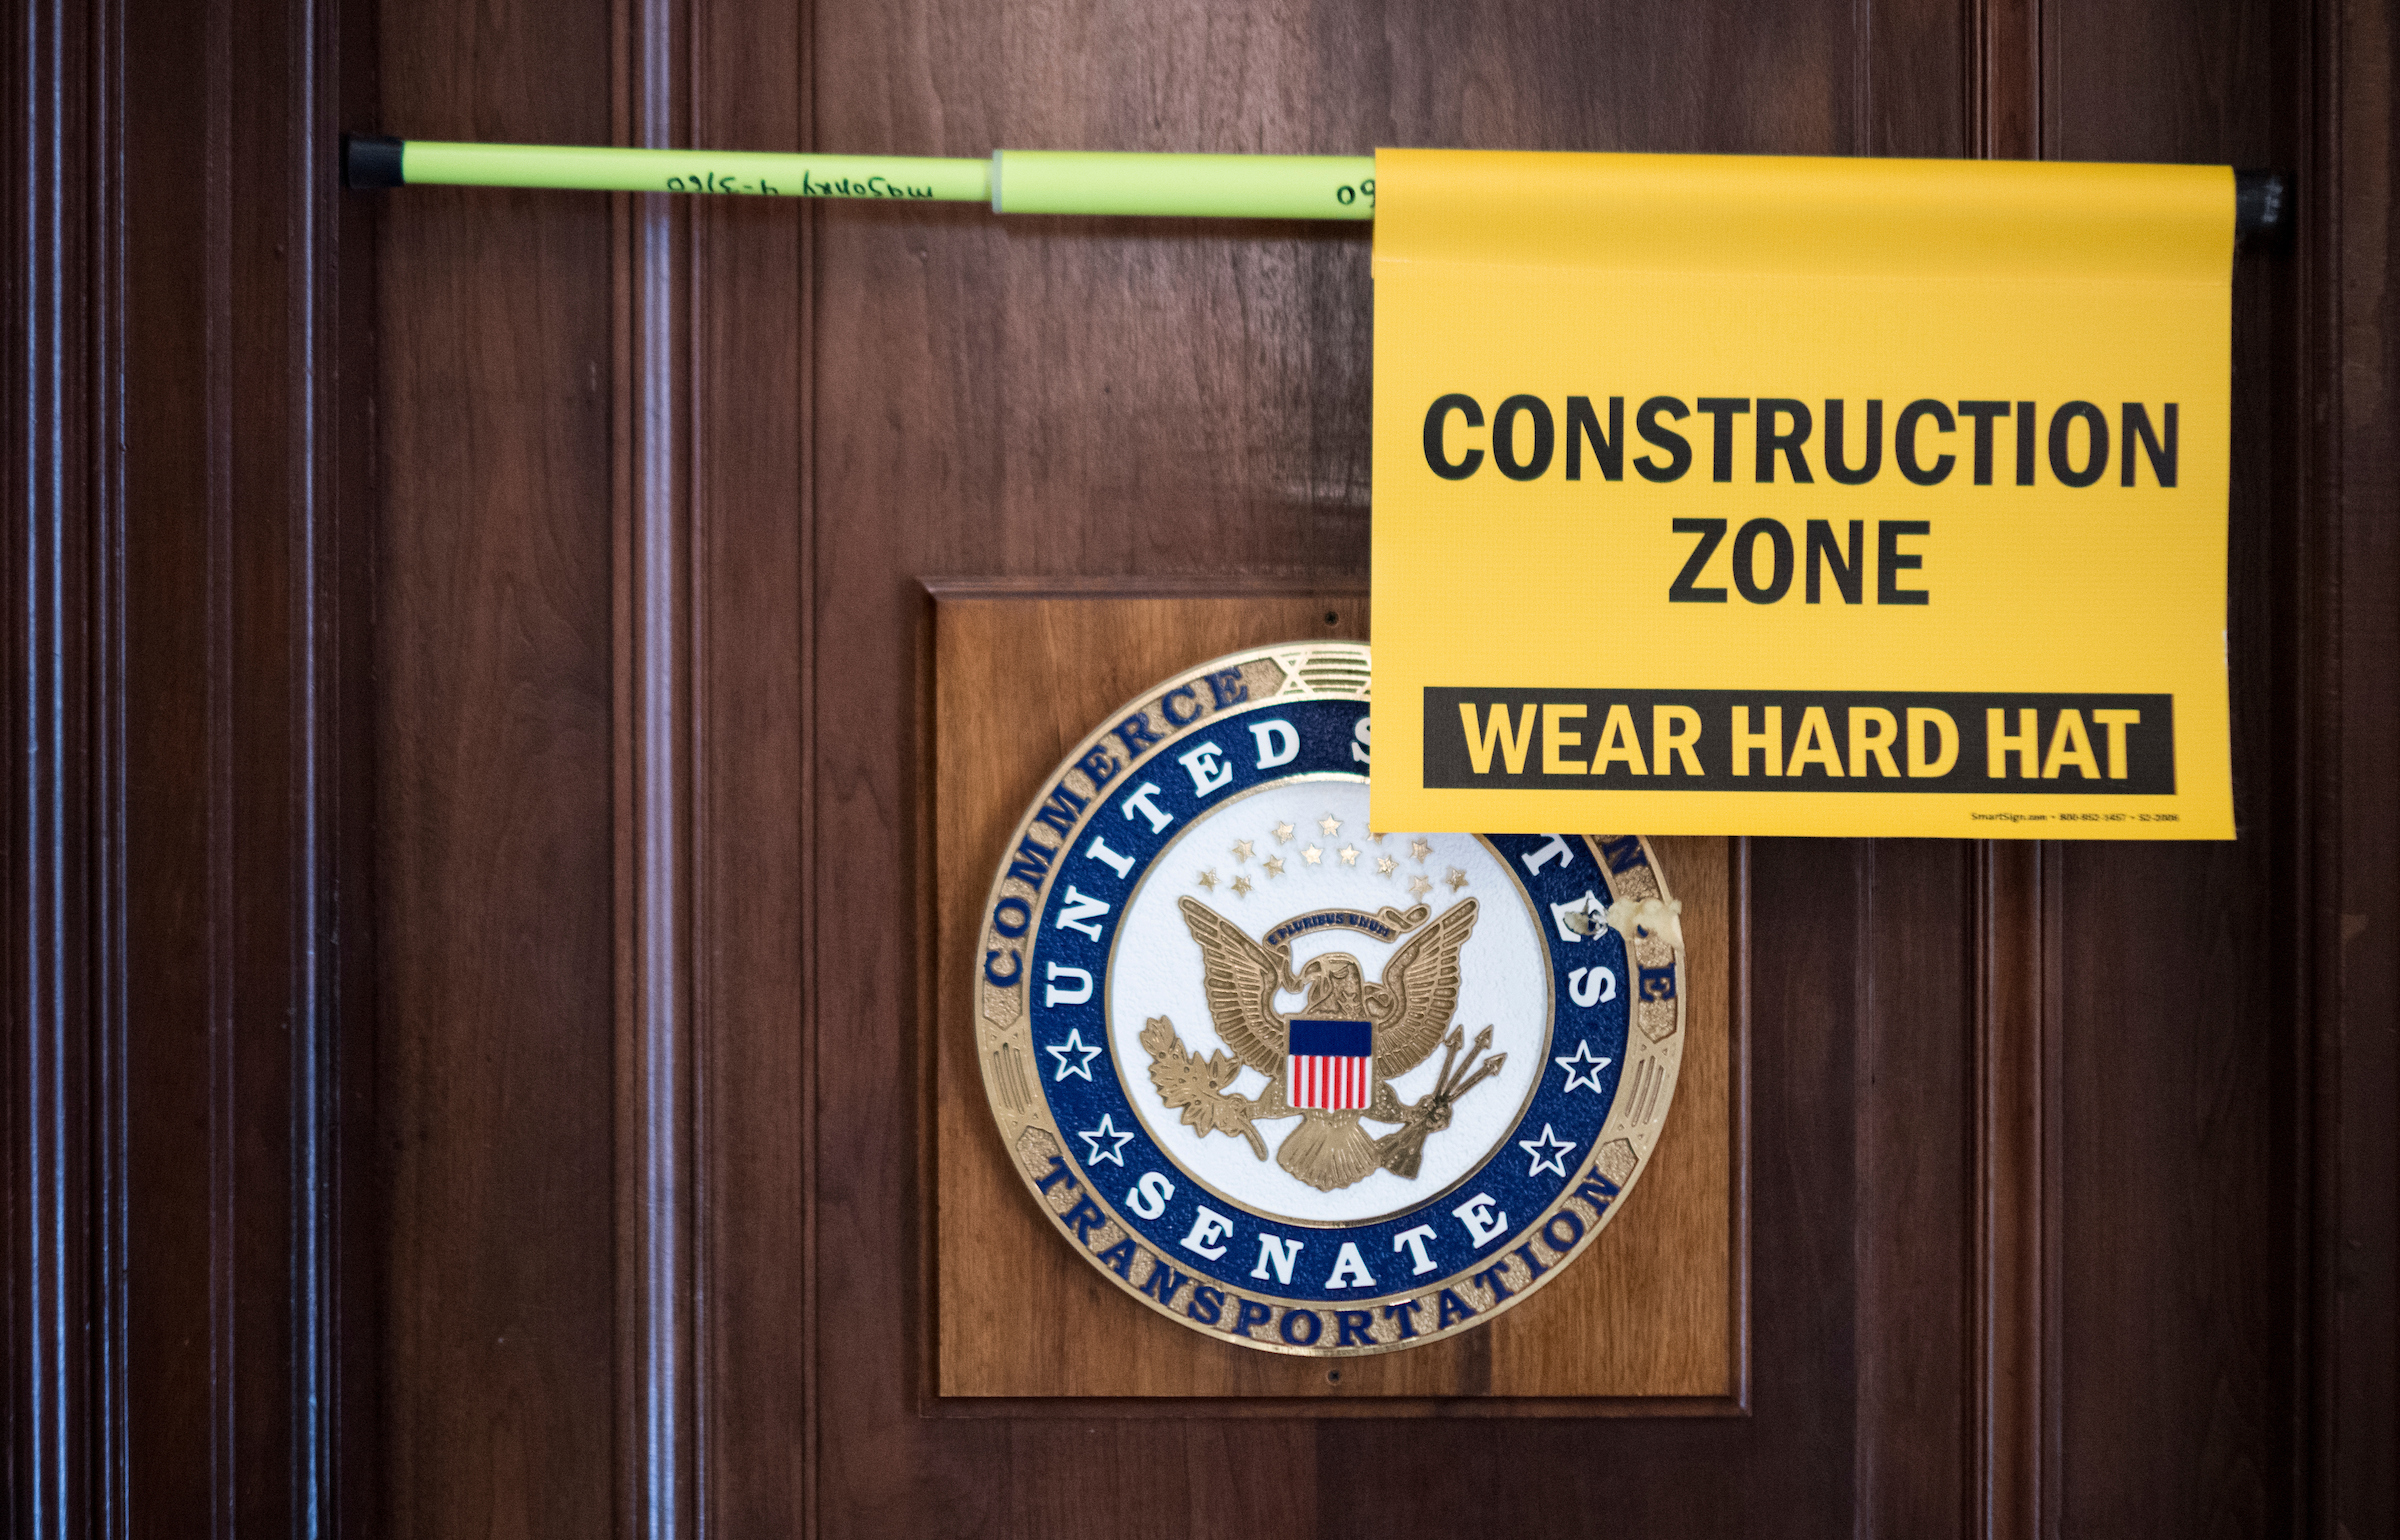 The Senate Commerce, Science, and Transportation Committee offices in the Russell Senate Office Building are undergoing renovations as seen on Wednesday, Jan. 23, 2019. (Bill Clark/CQ Roll Call)